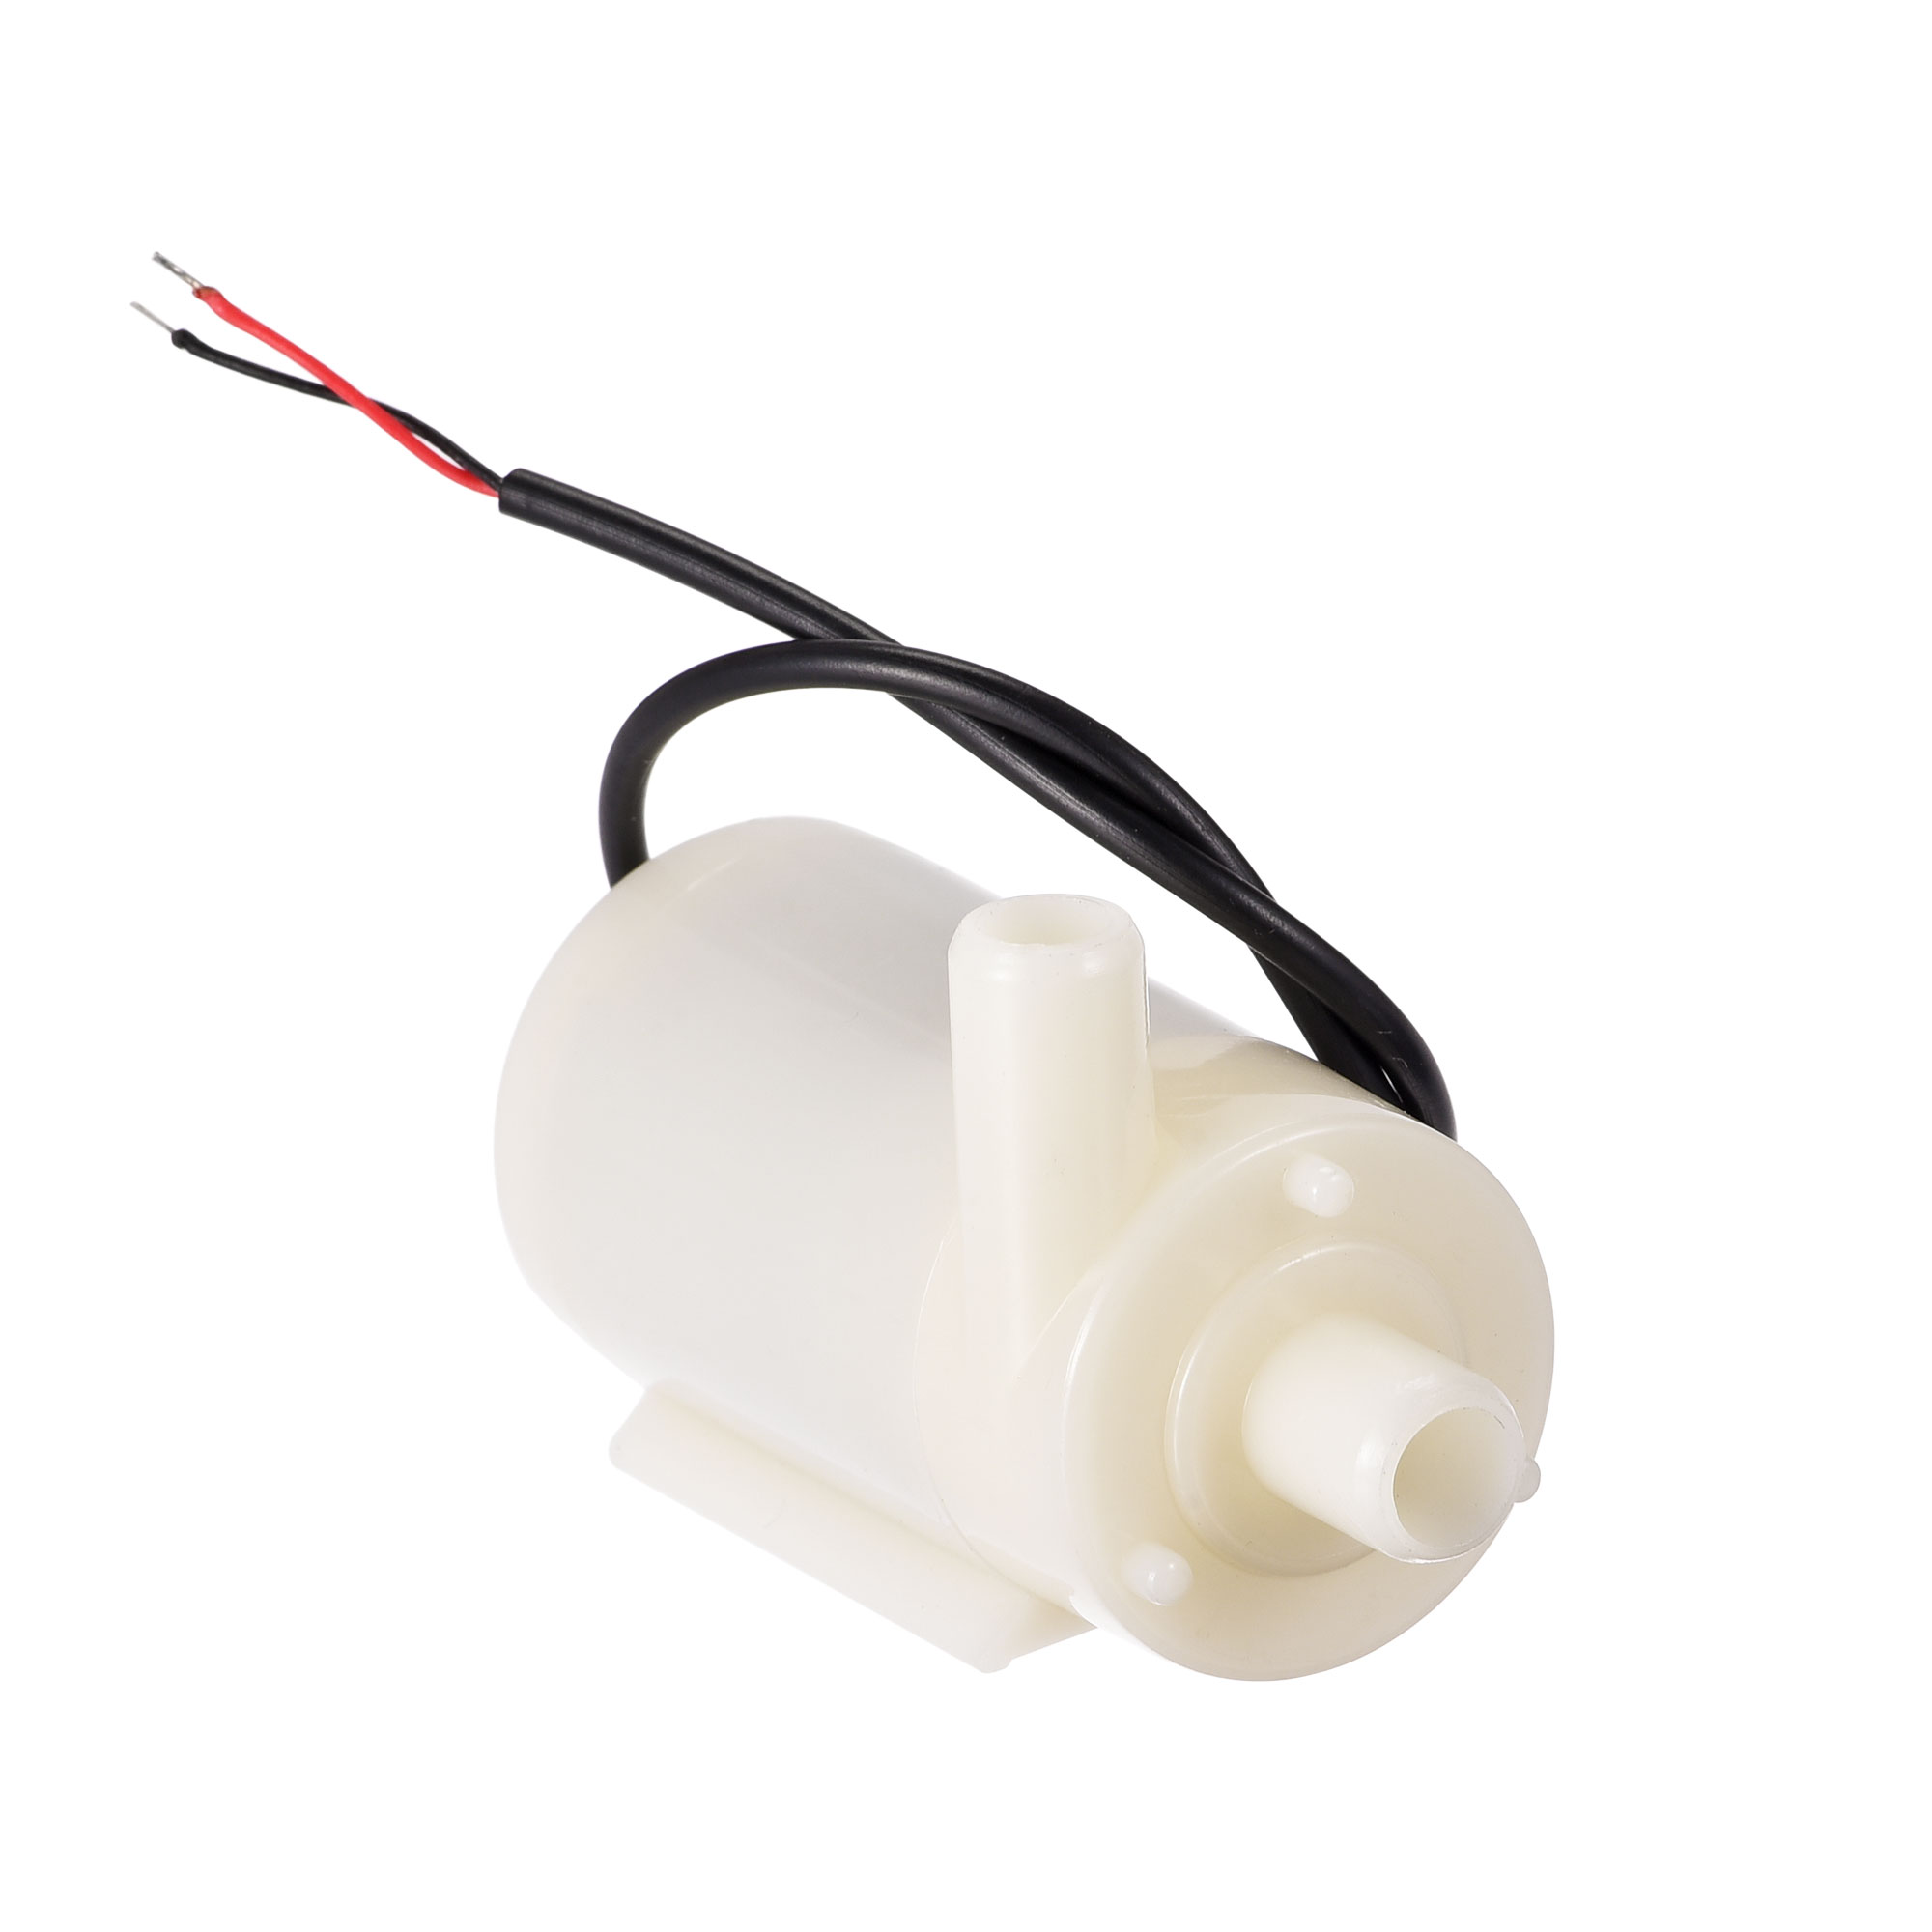 Micro Mini Water Pump DC 4.5V Horizontal Style for Plant Watering